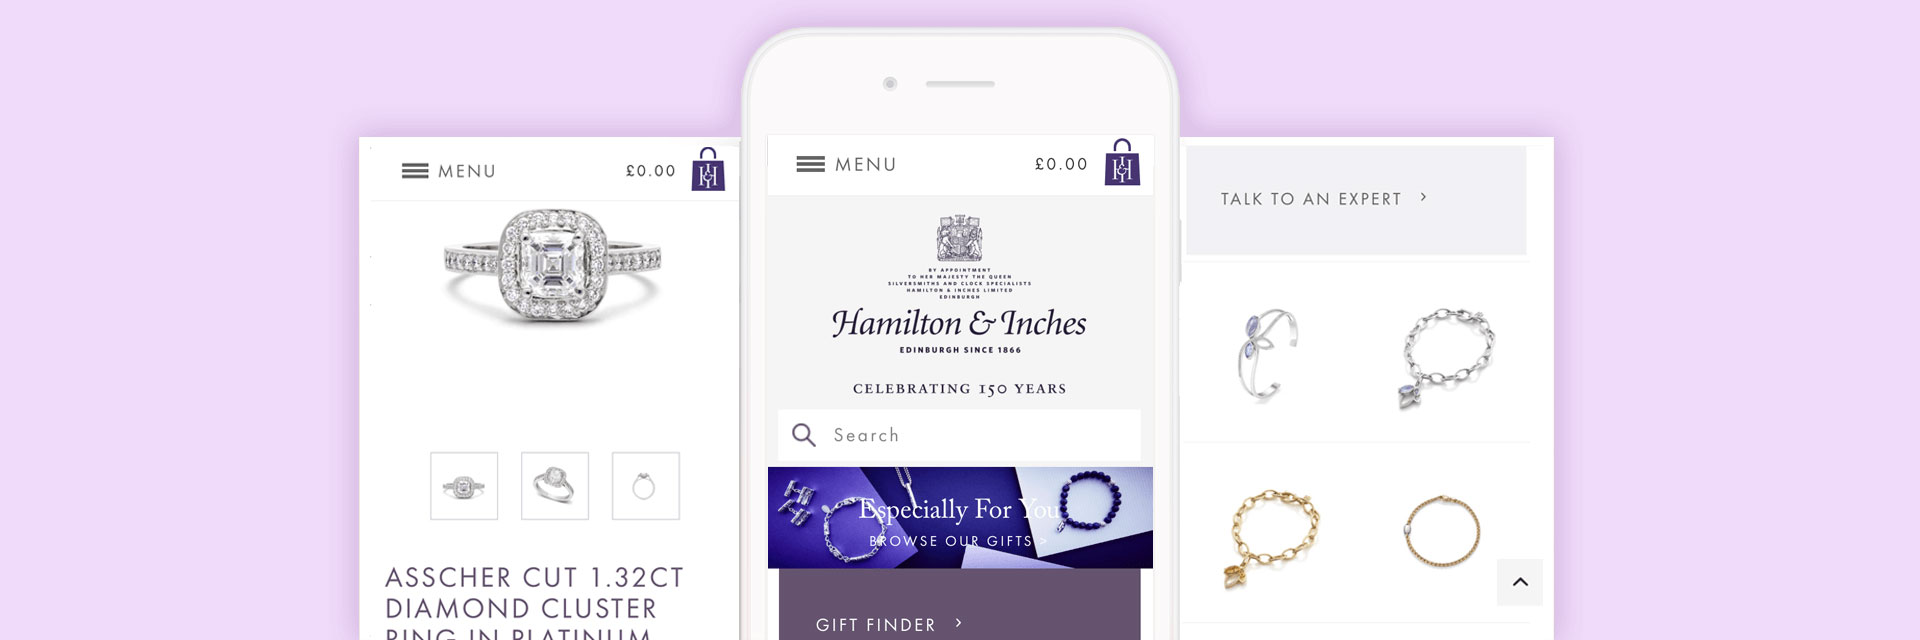 Hamilton & Inches mobile